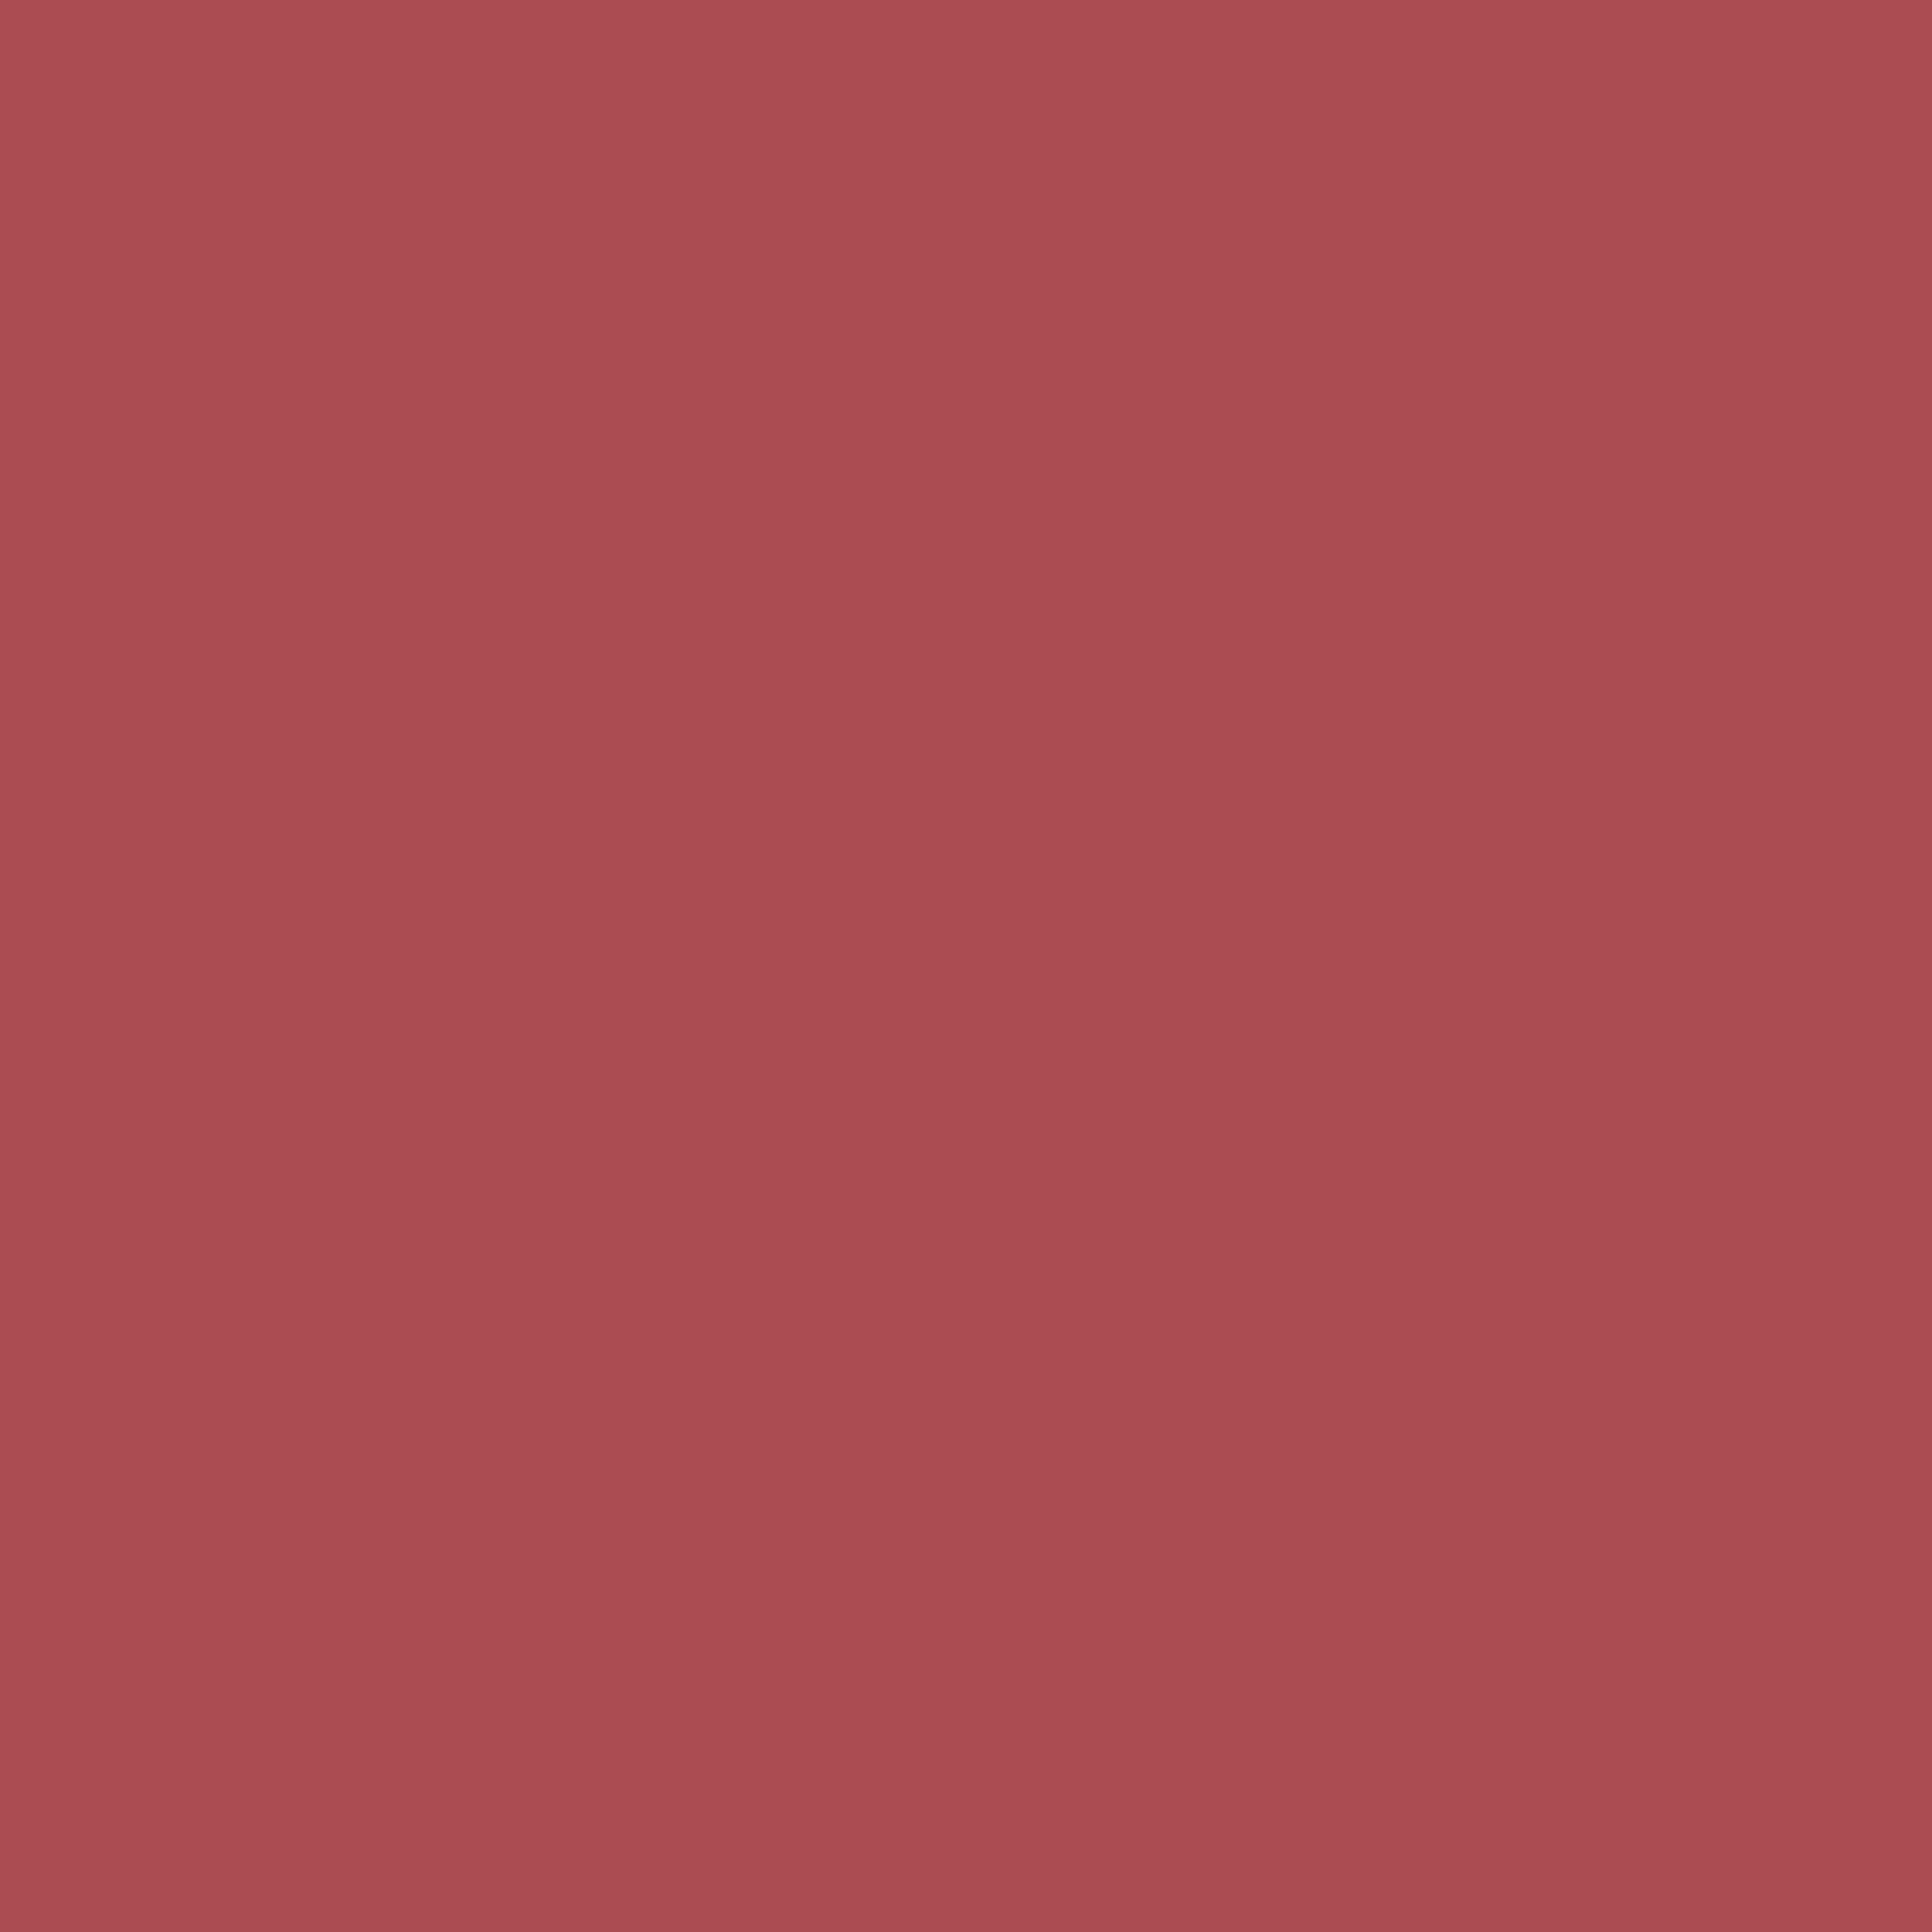 3600x3600 English Red Solid Color Background